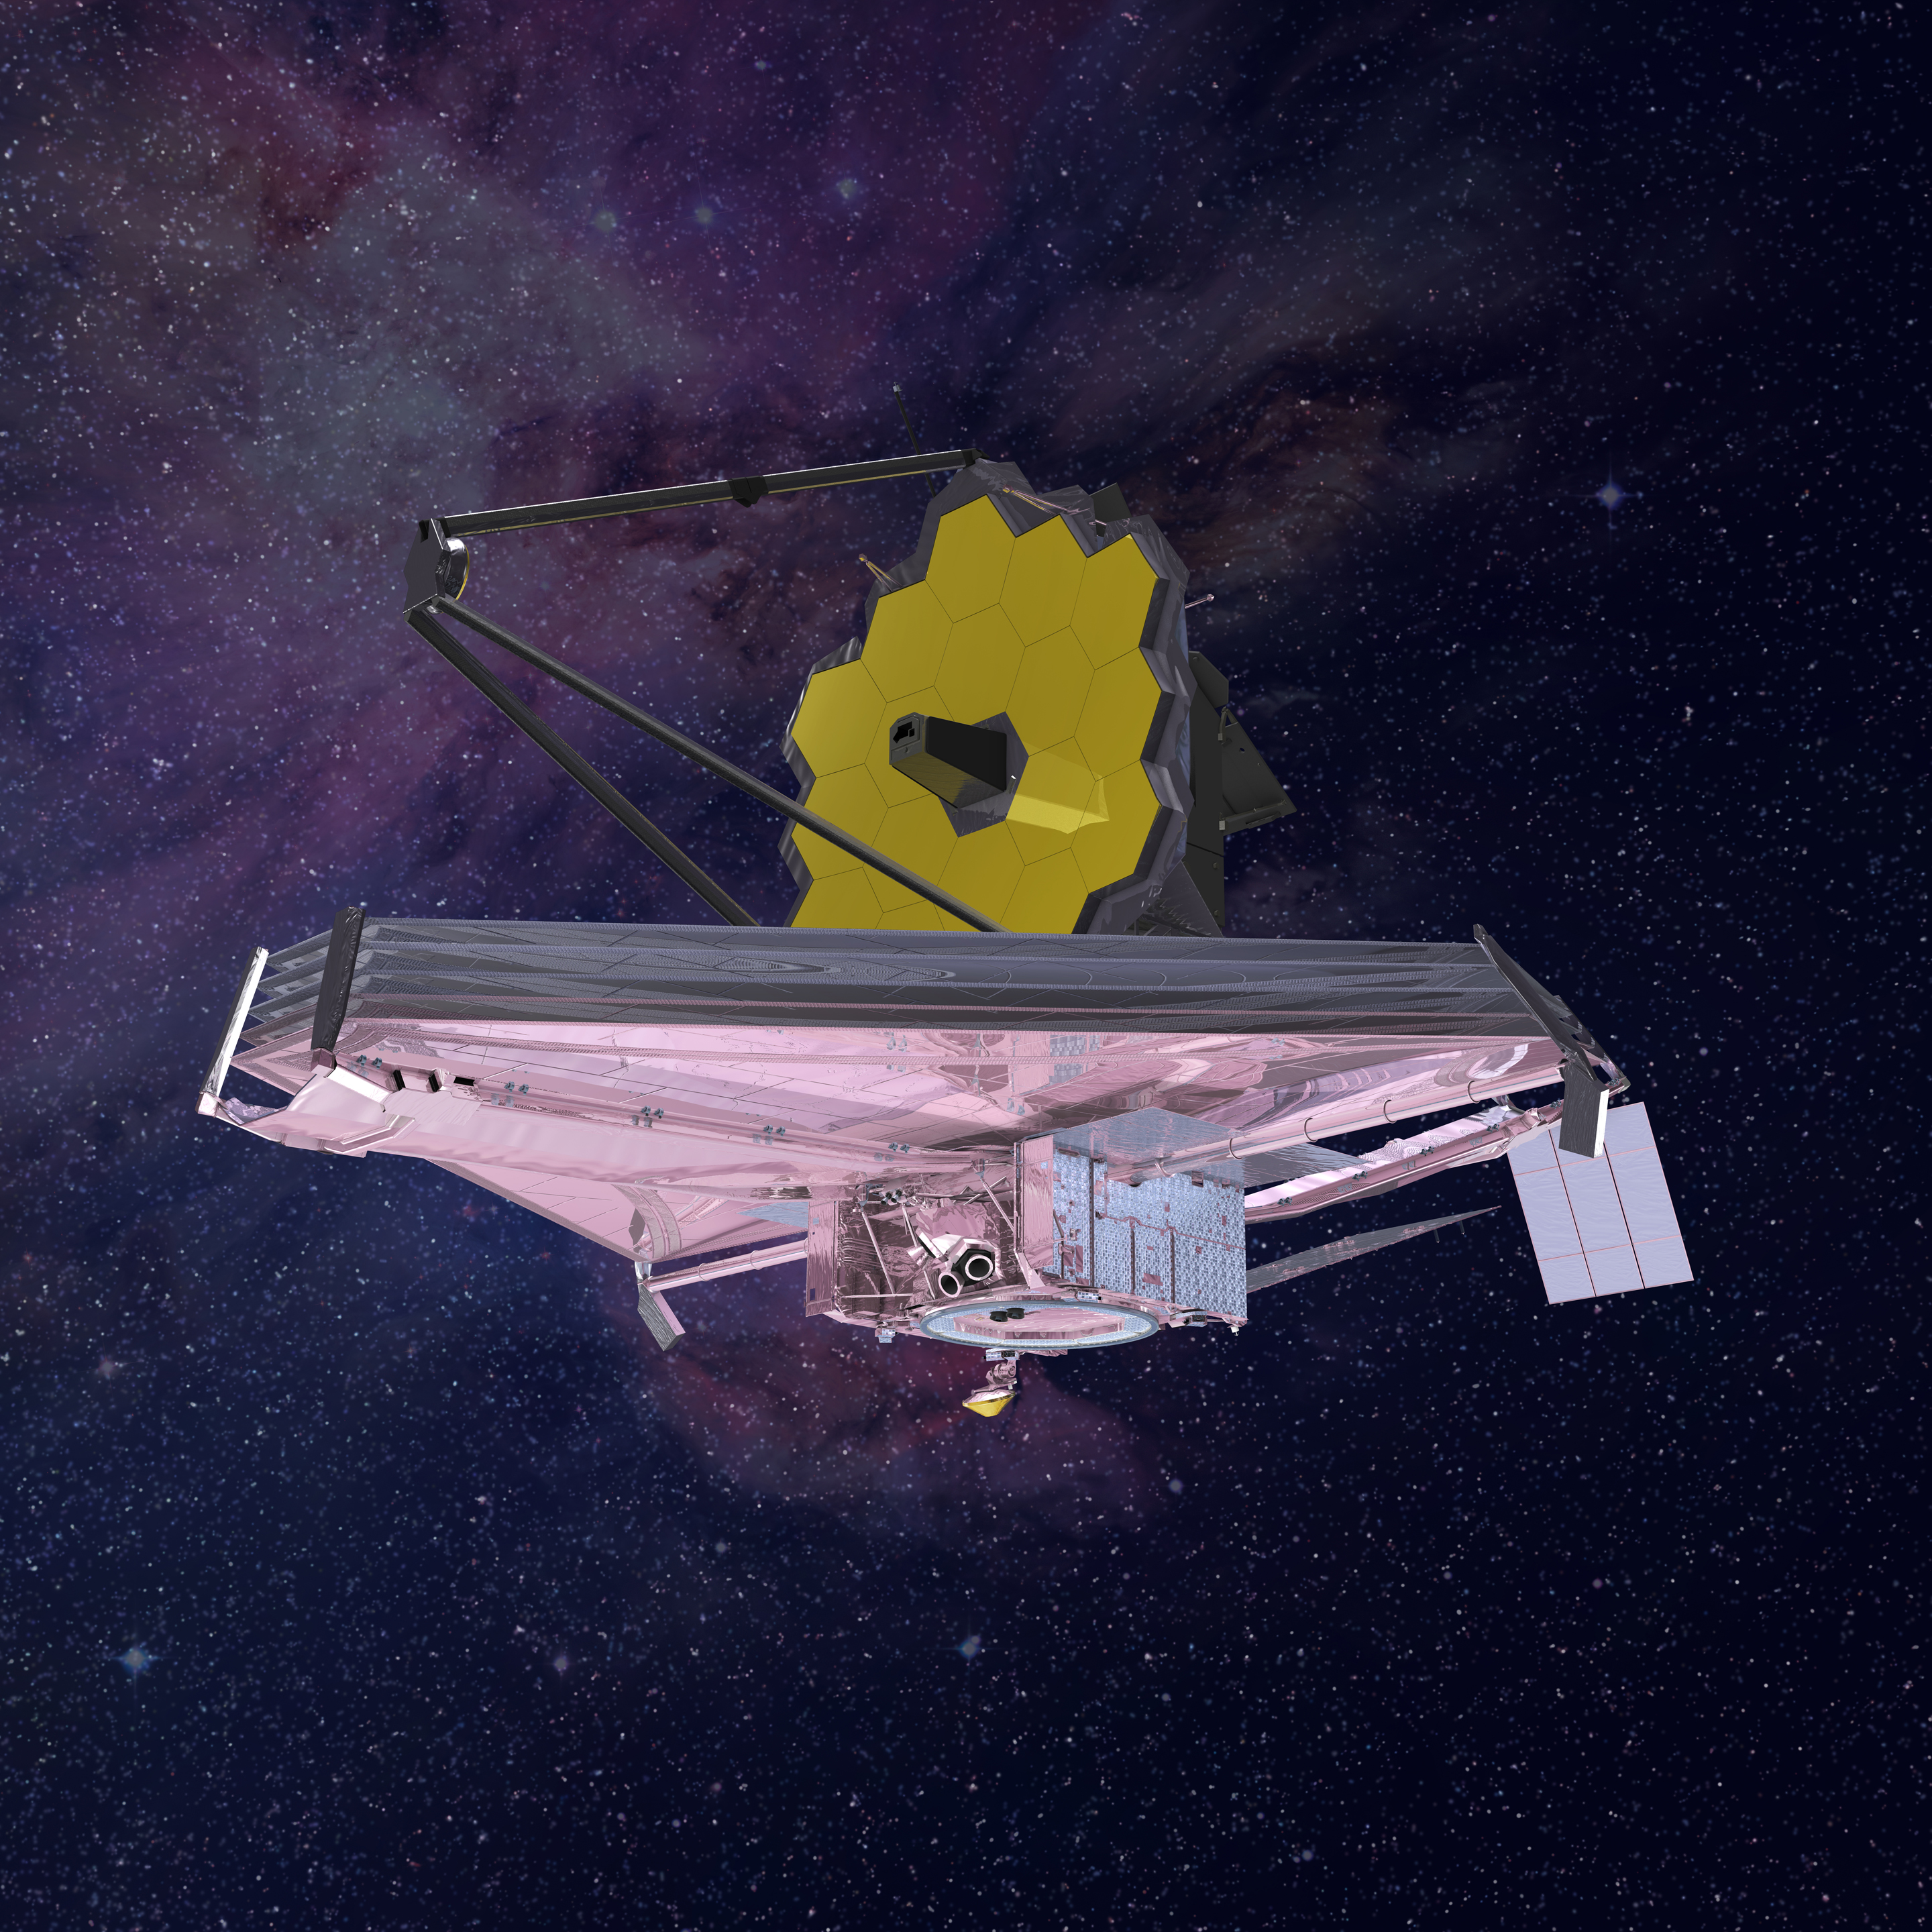 Artist conception of the James Webb Space Telescope observing the cosmos.